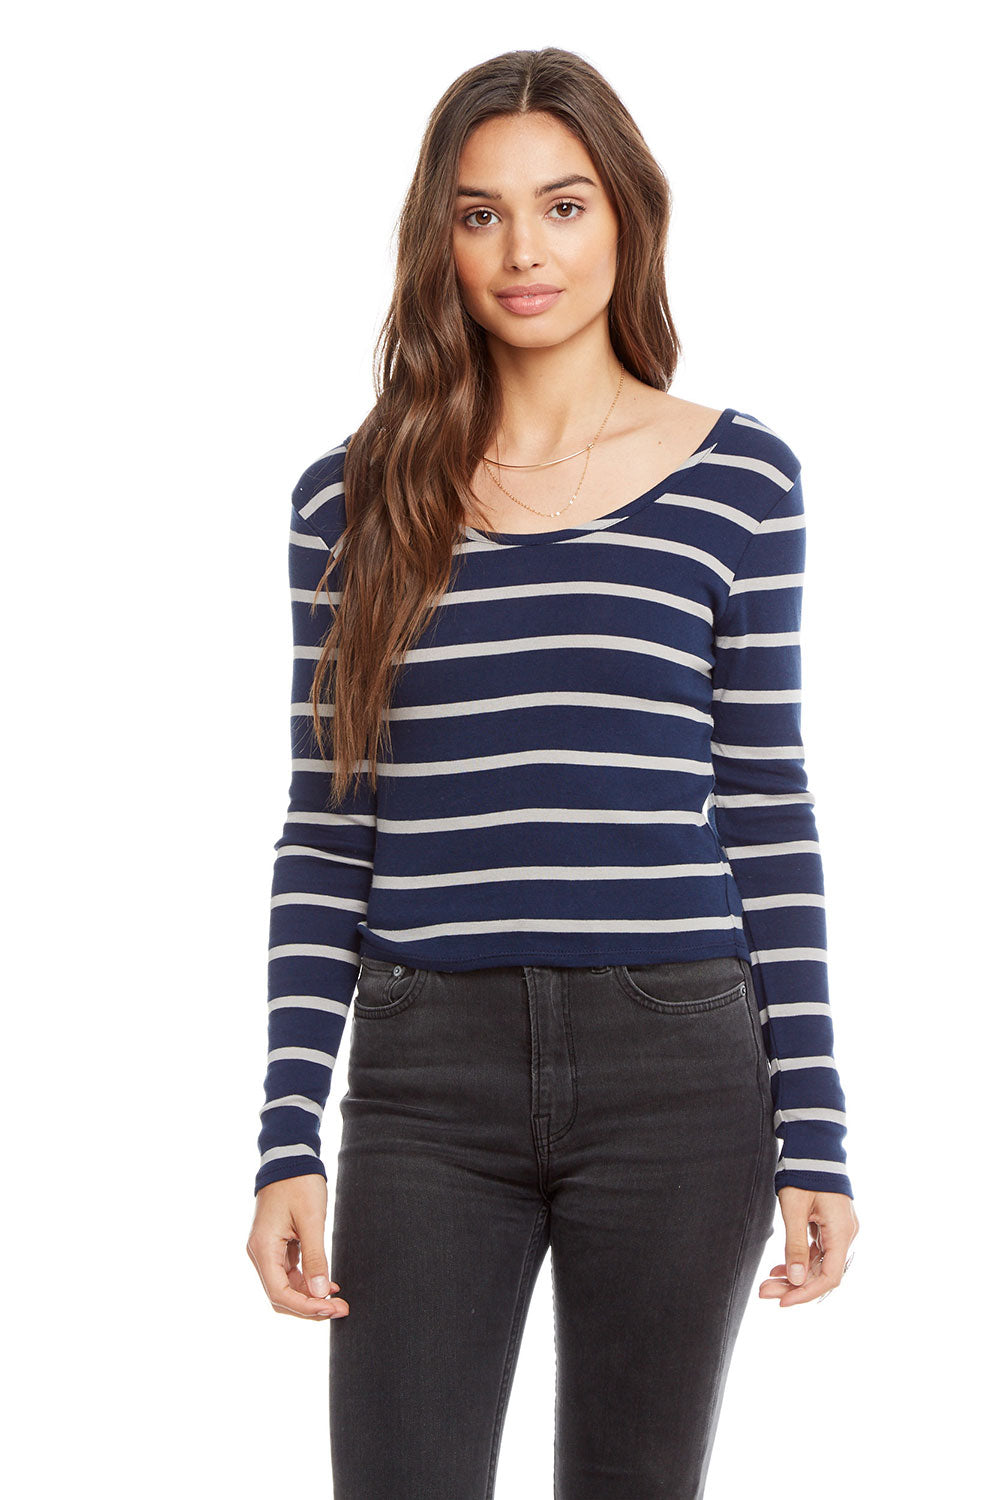 Baby Rib Long Sleeve Double Scoop Crop Top WOMENS chaserbrand4.myshopify.com